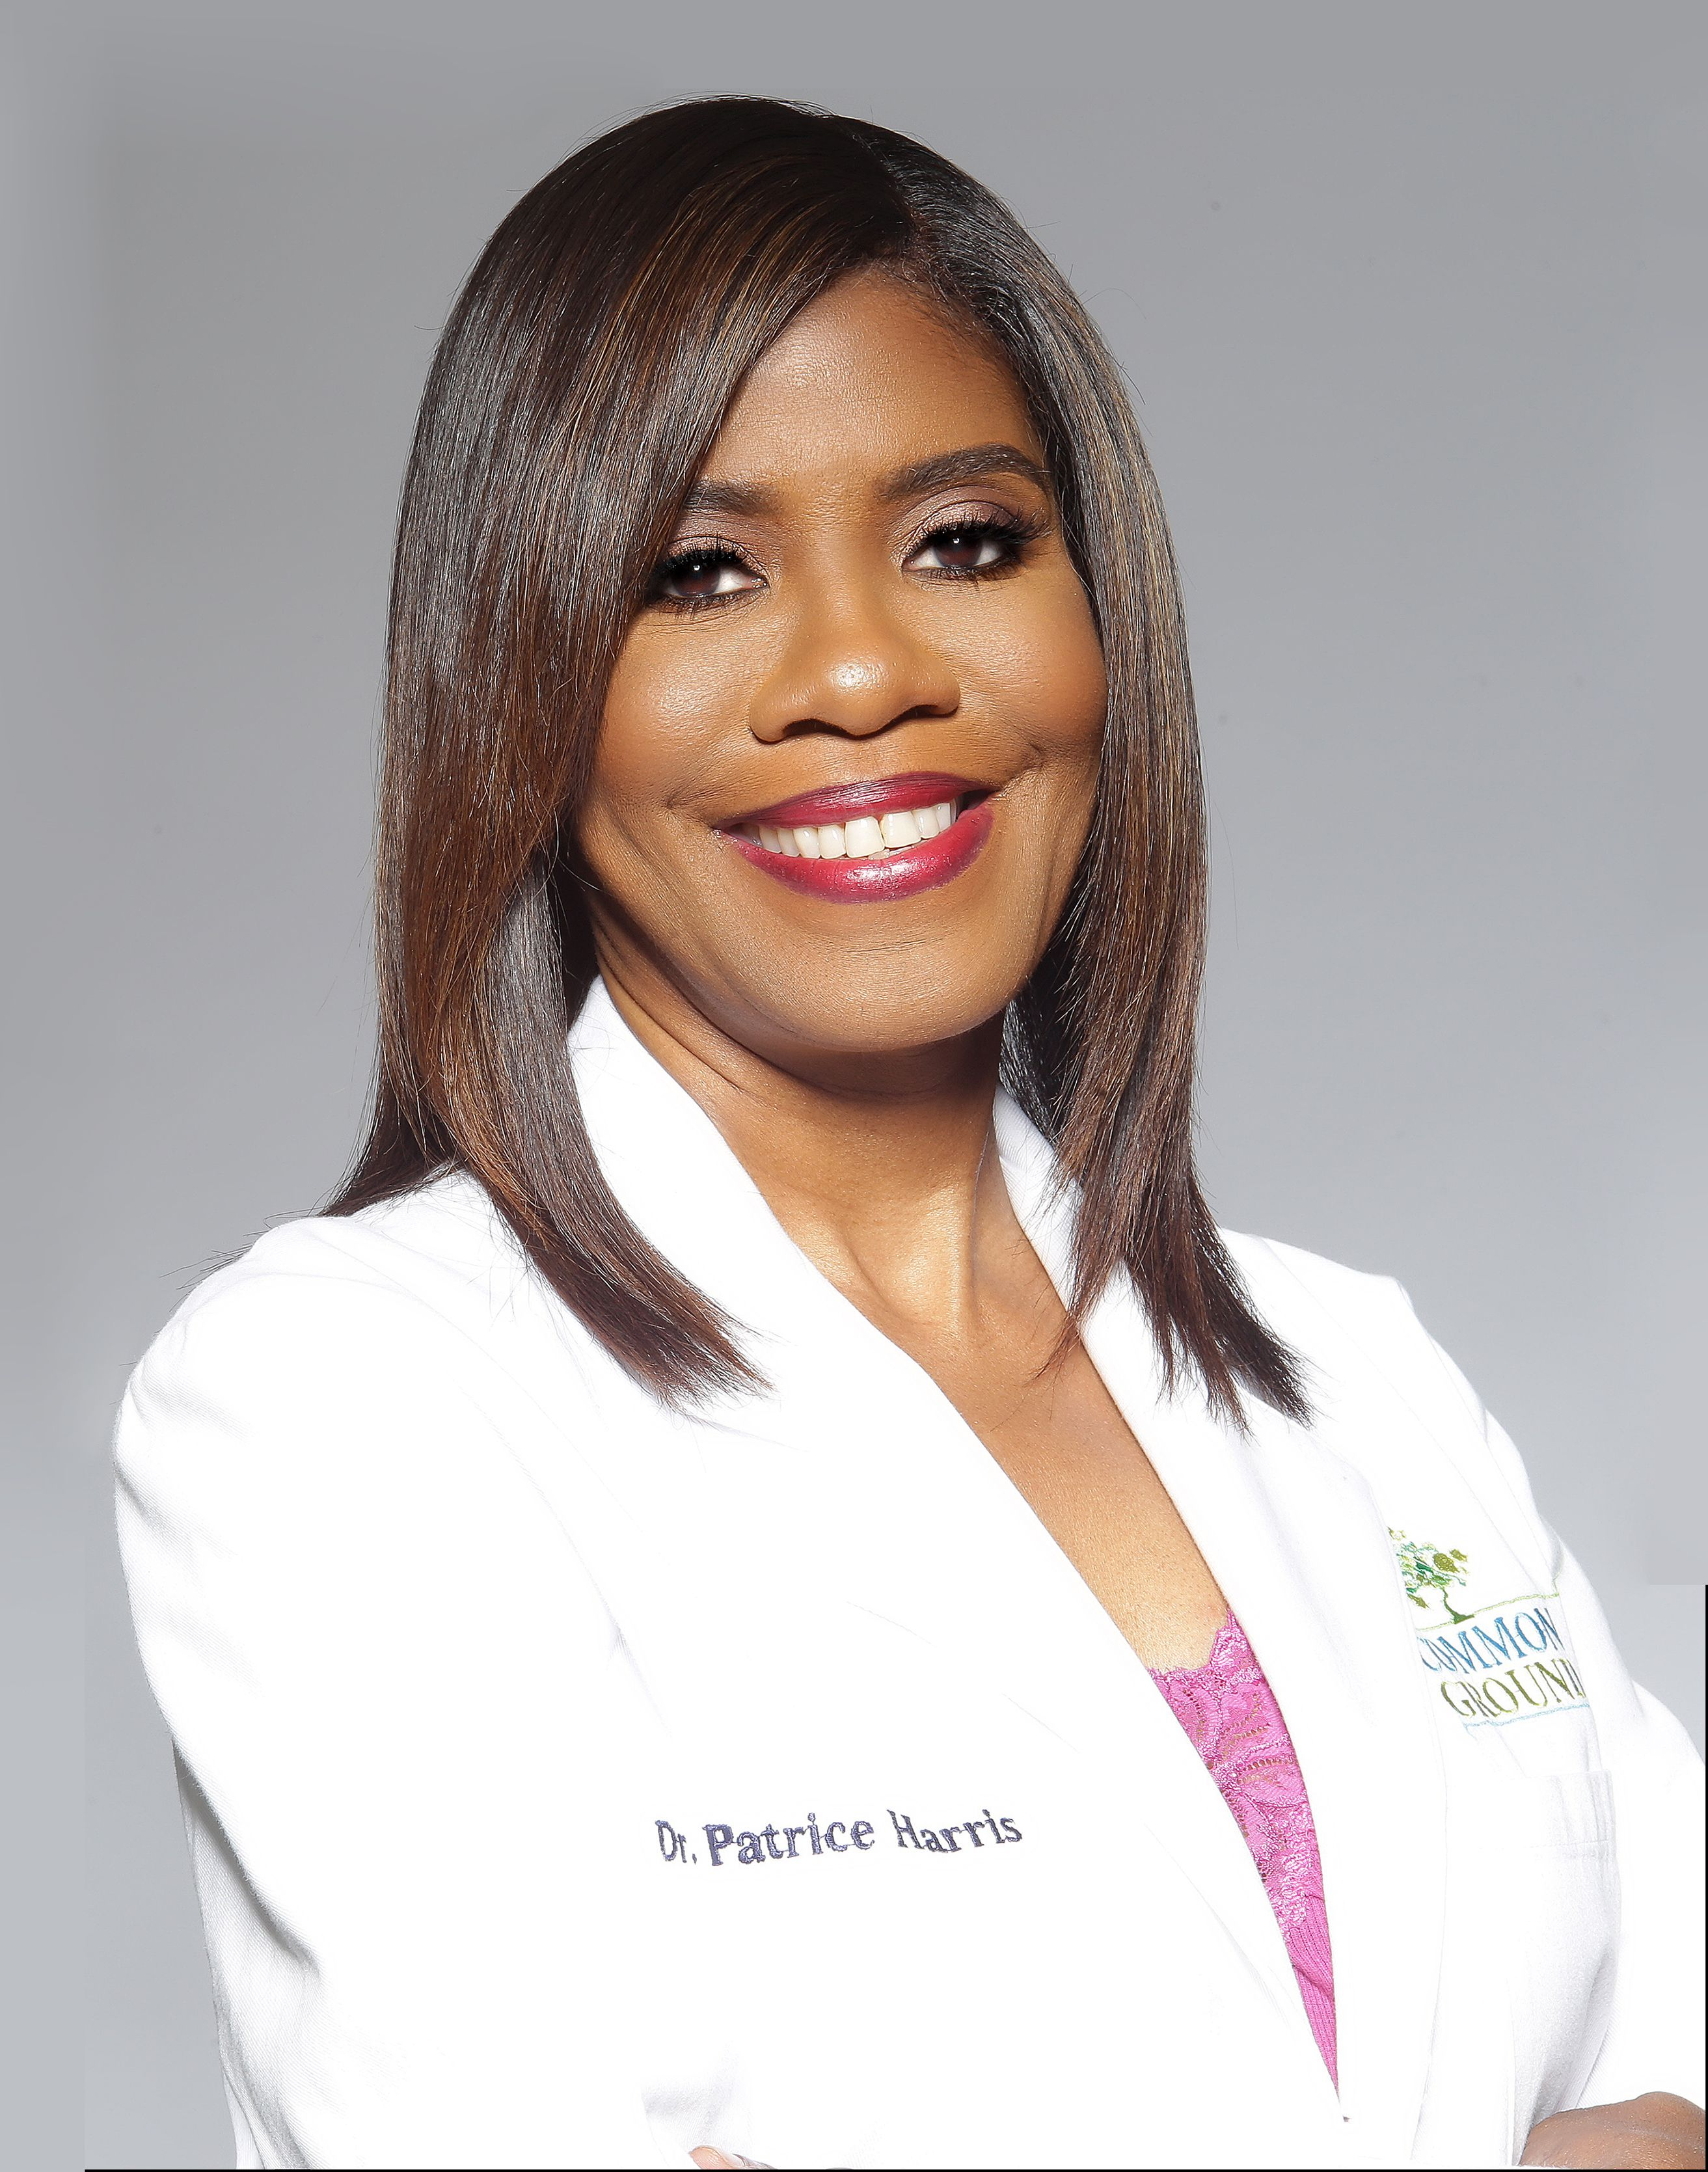 West Virginia native Dr. Patrice Harris is taking the